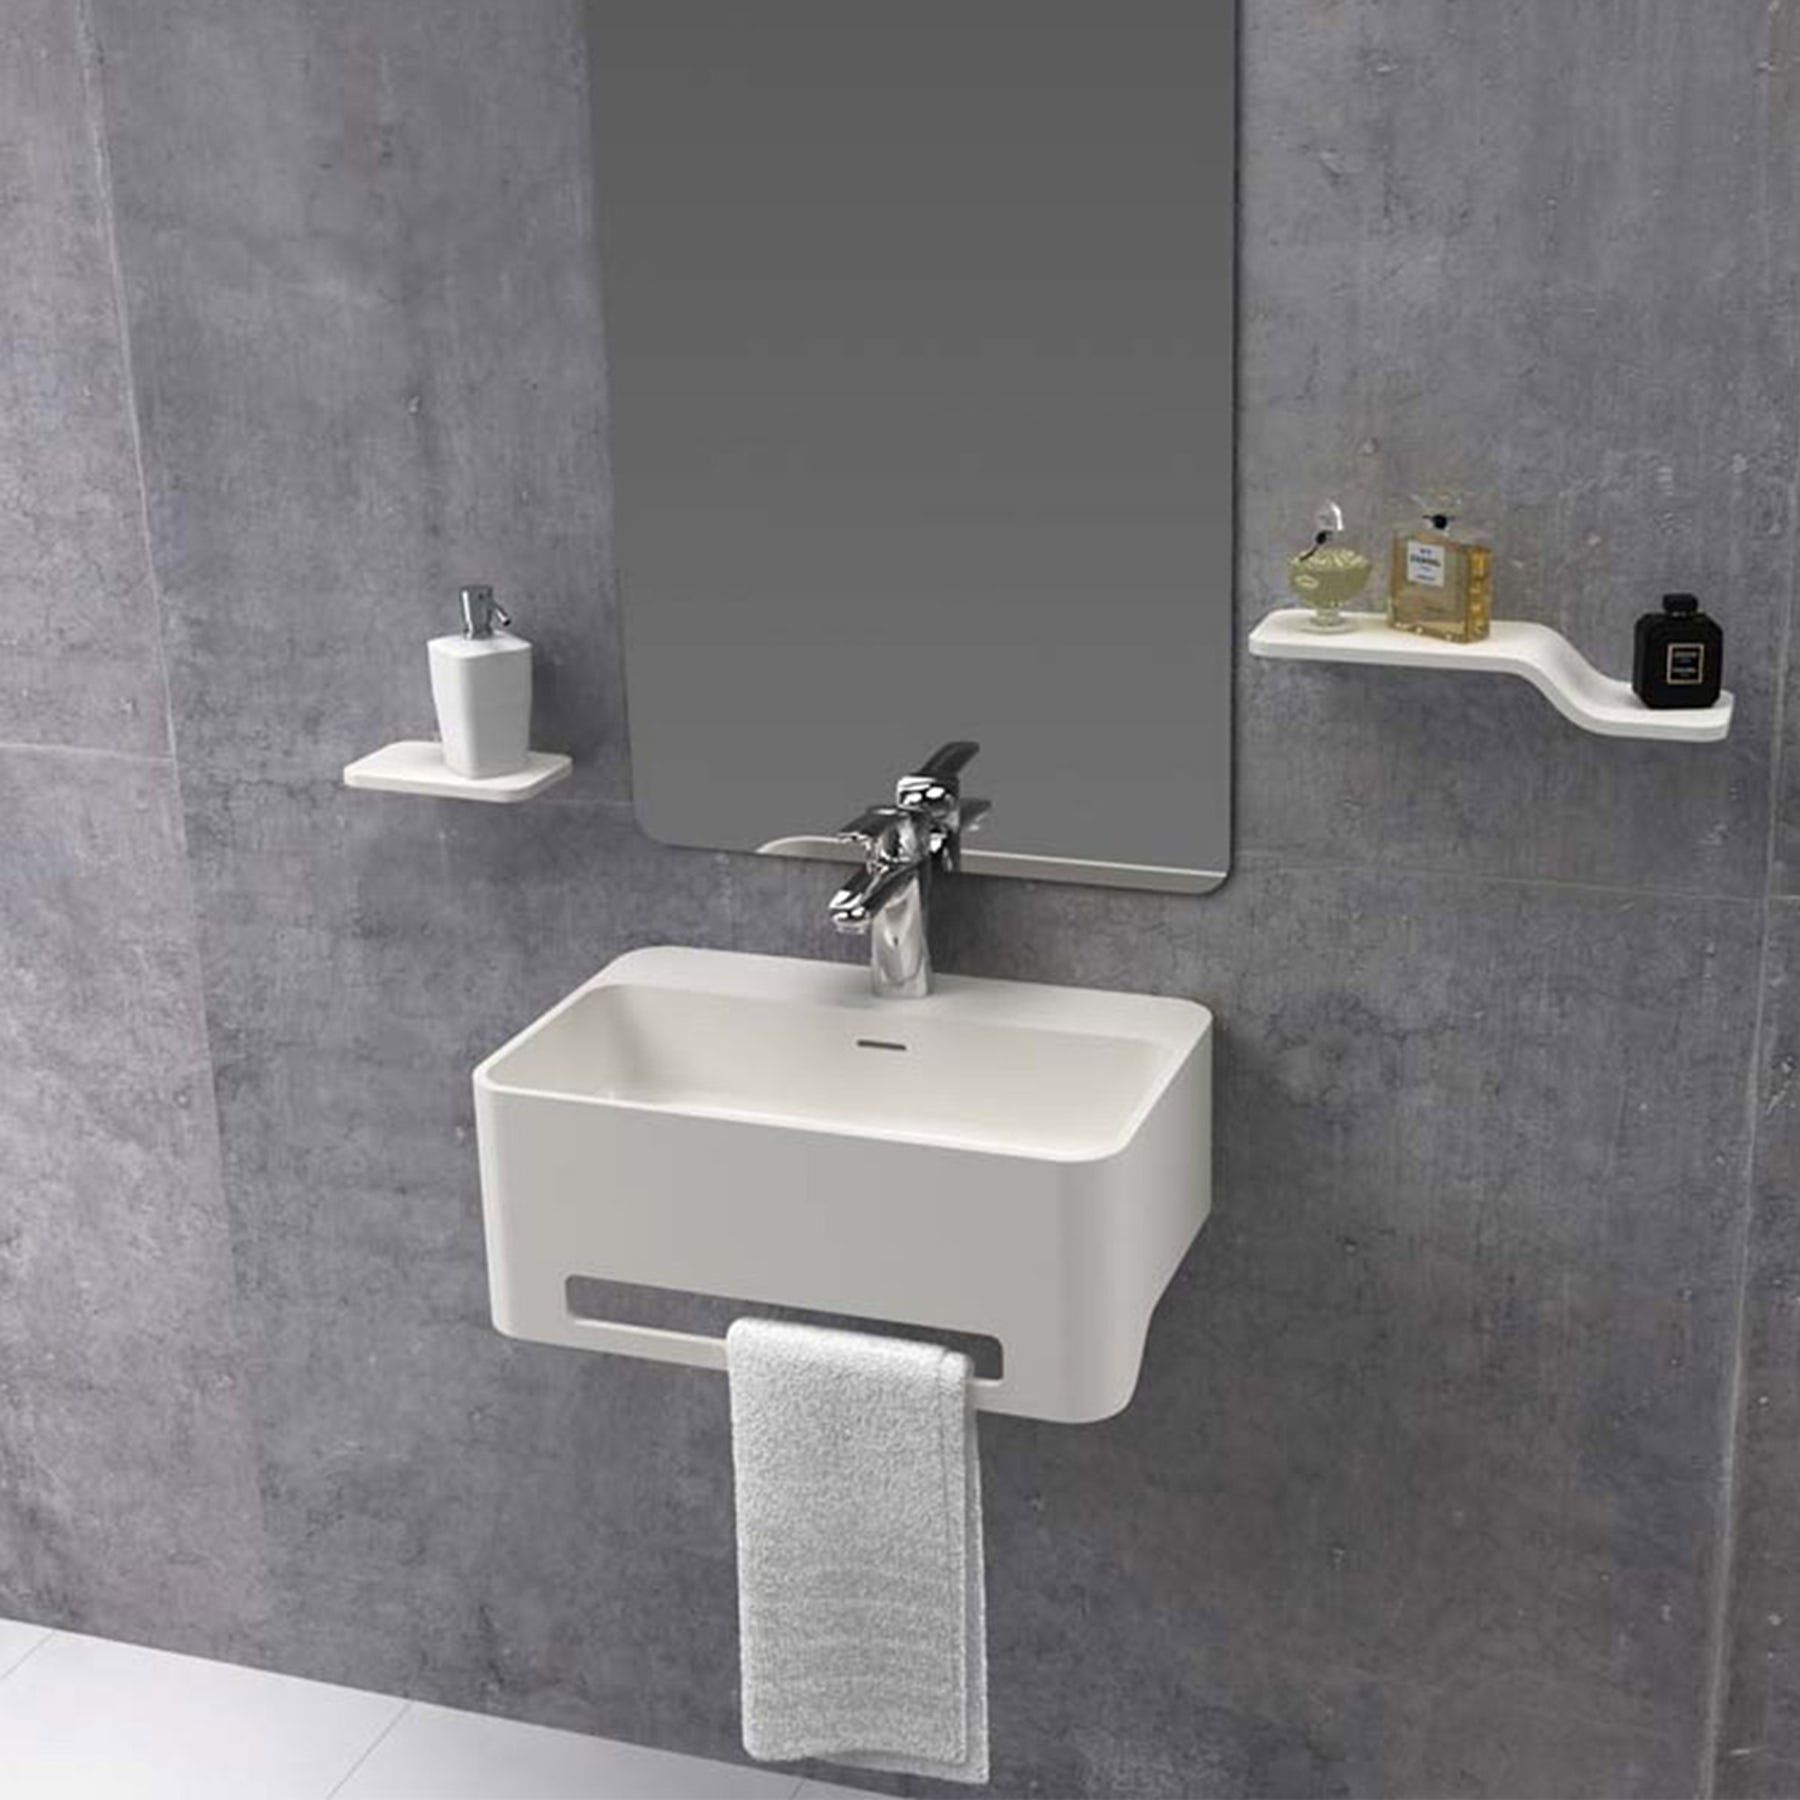 Mode Carpi 1 Tap Hole Solid Surface Stone Resin Wall Hung Basin 500mm Solid Surface Basin Trendy Bathroom